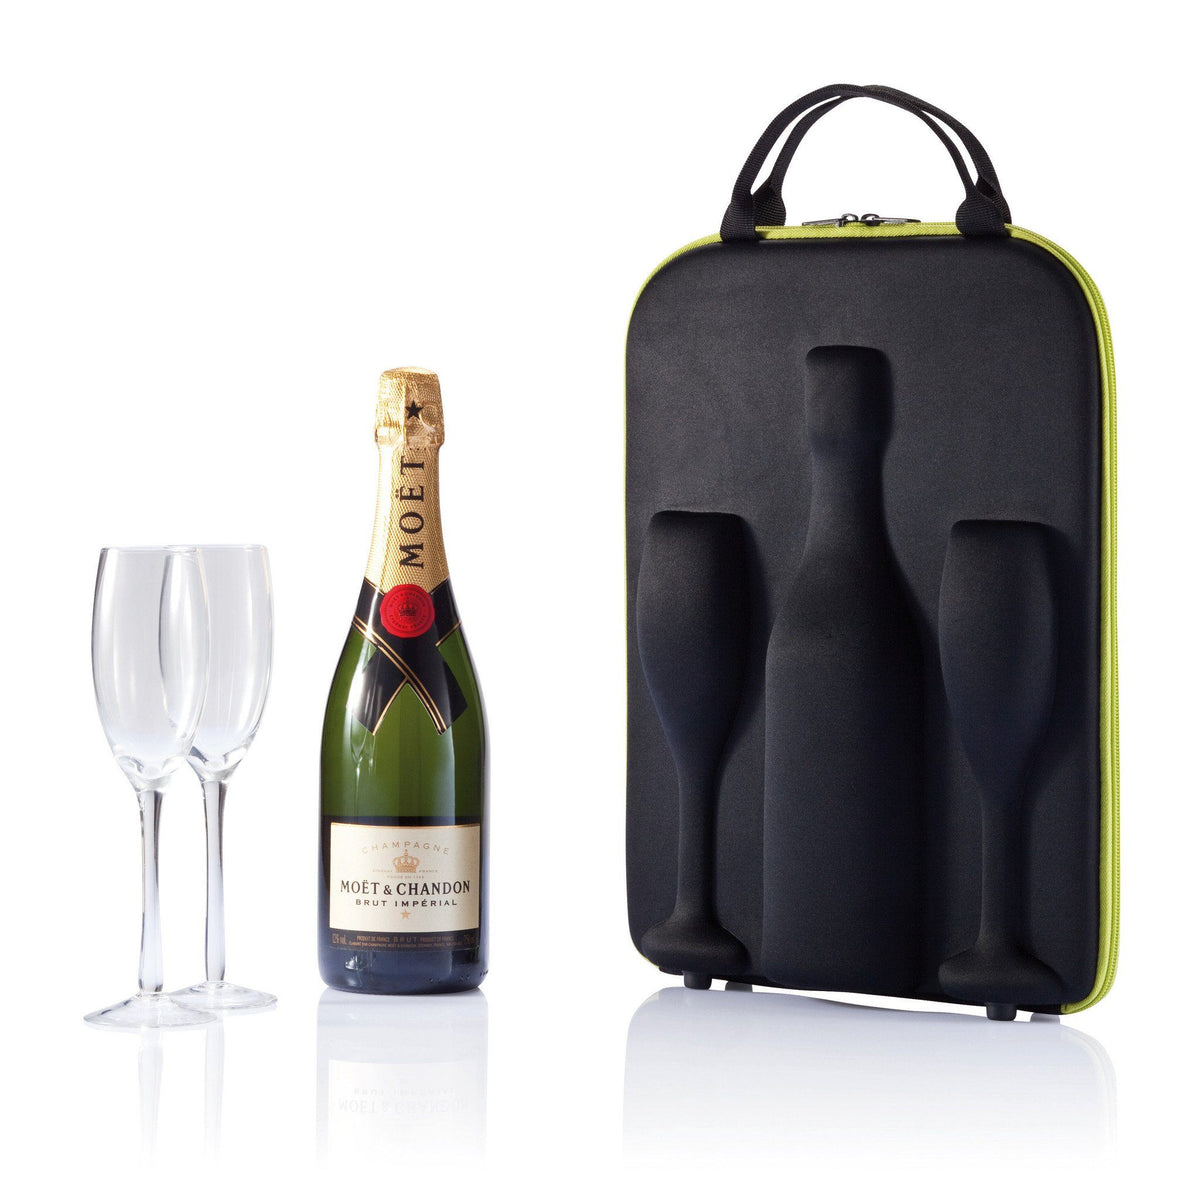 Bottle Protector Pouches - SWIRL CHAMPAGNE/SPARKLING WINE BOTTLE AND FLUTE CARRIER